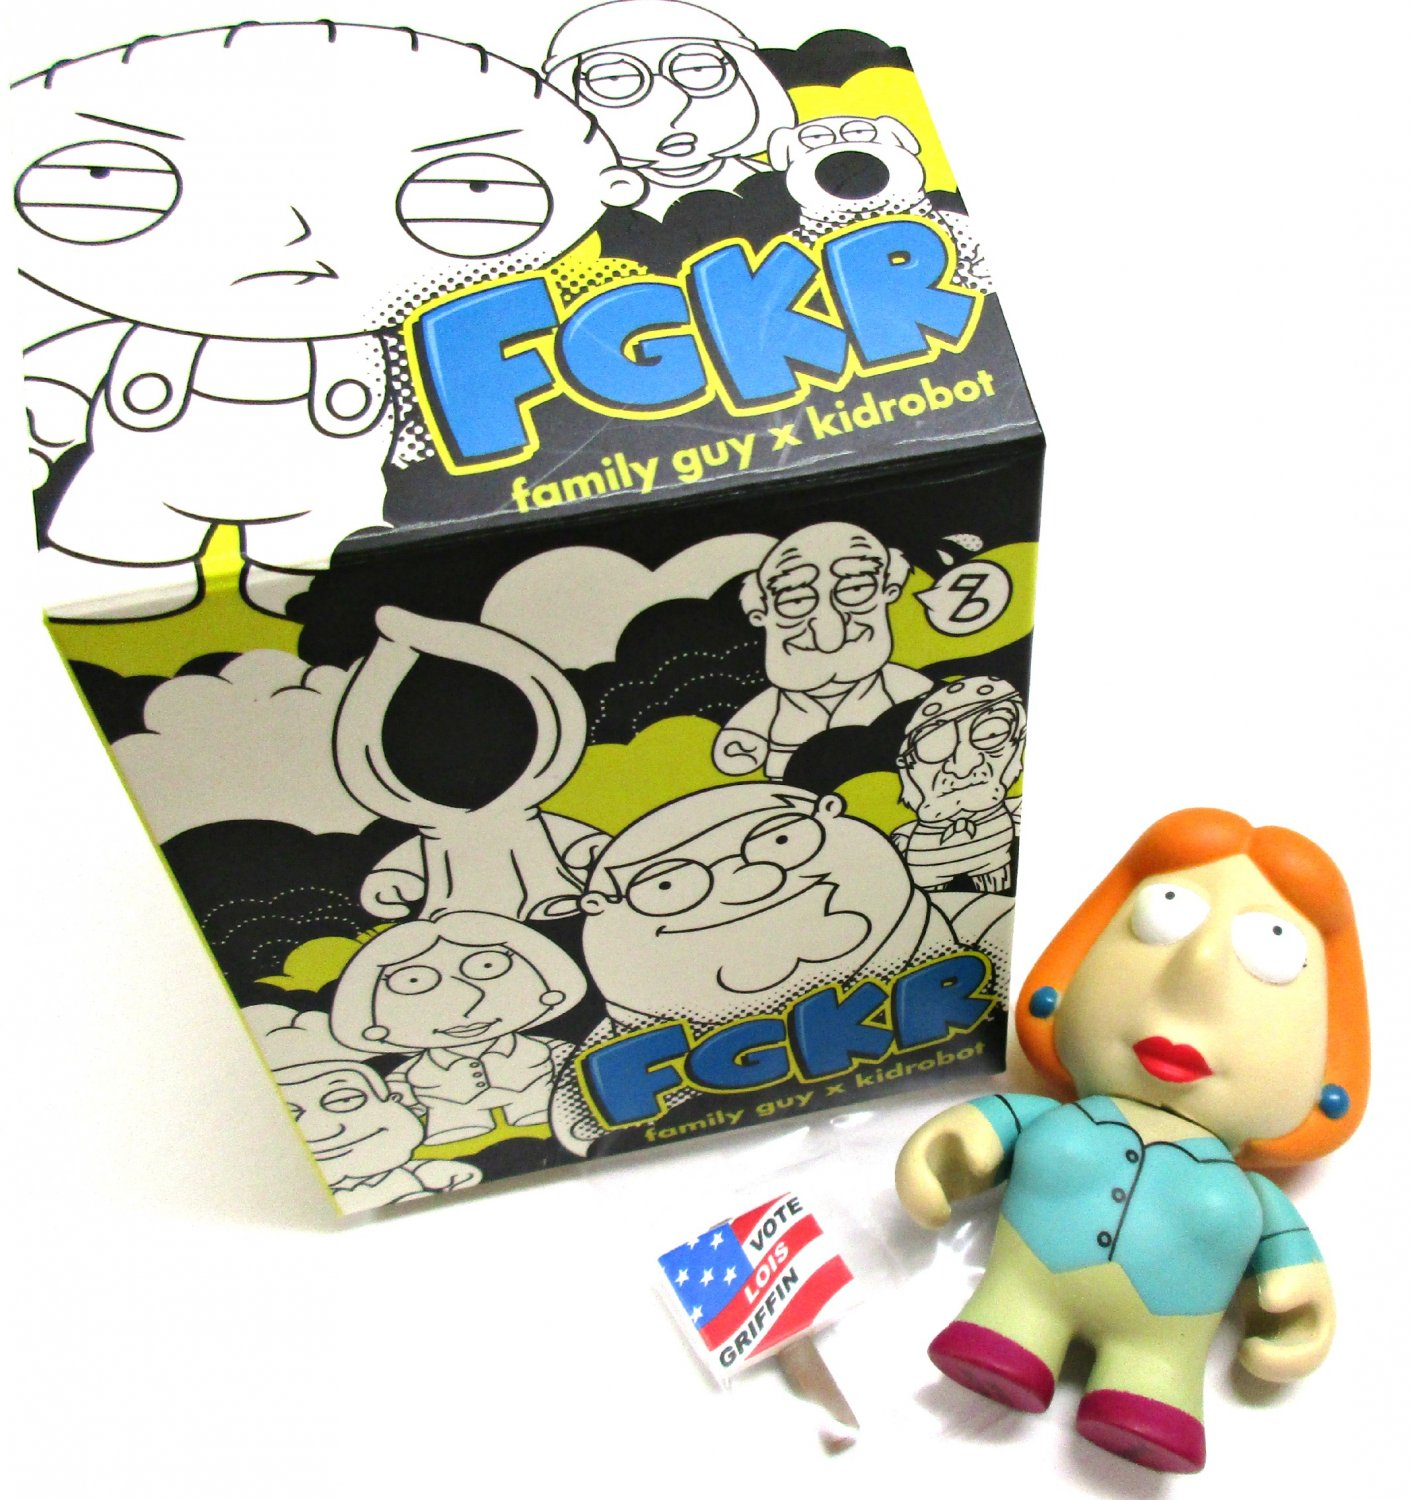 Family Guy Lois Griffin Vinyl Figure Collectible Blind Box by Kidrobot